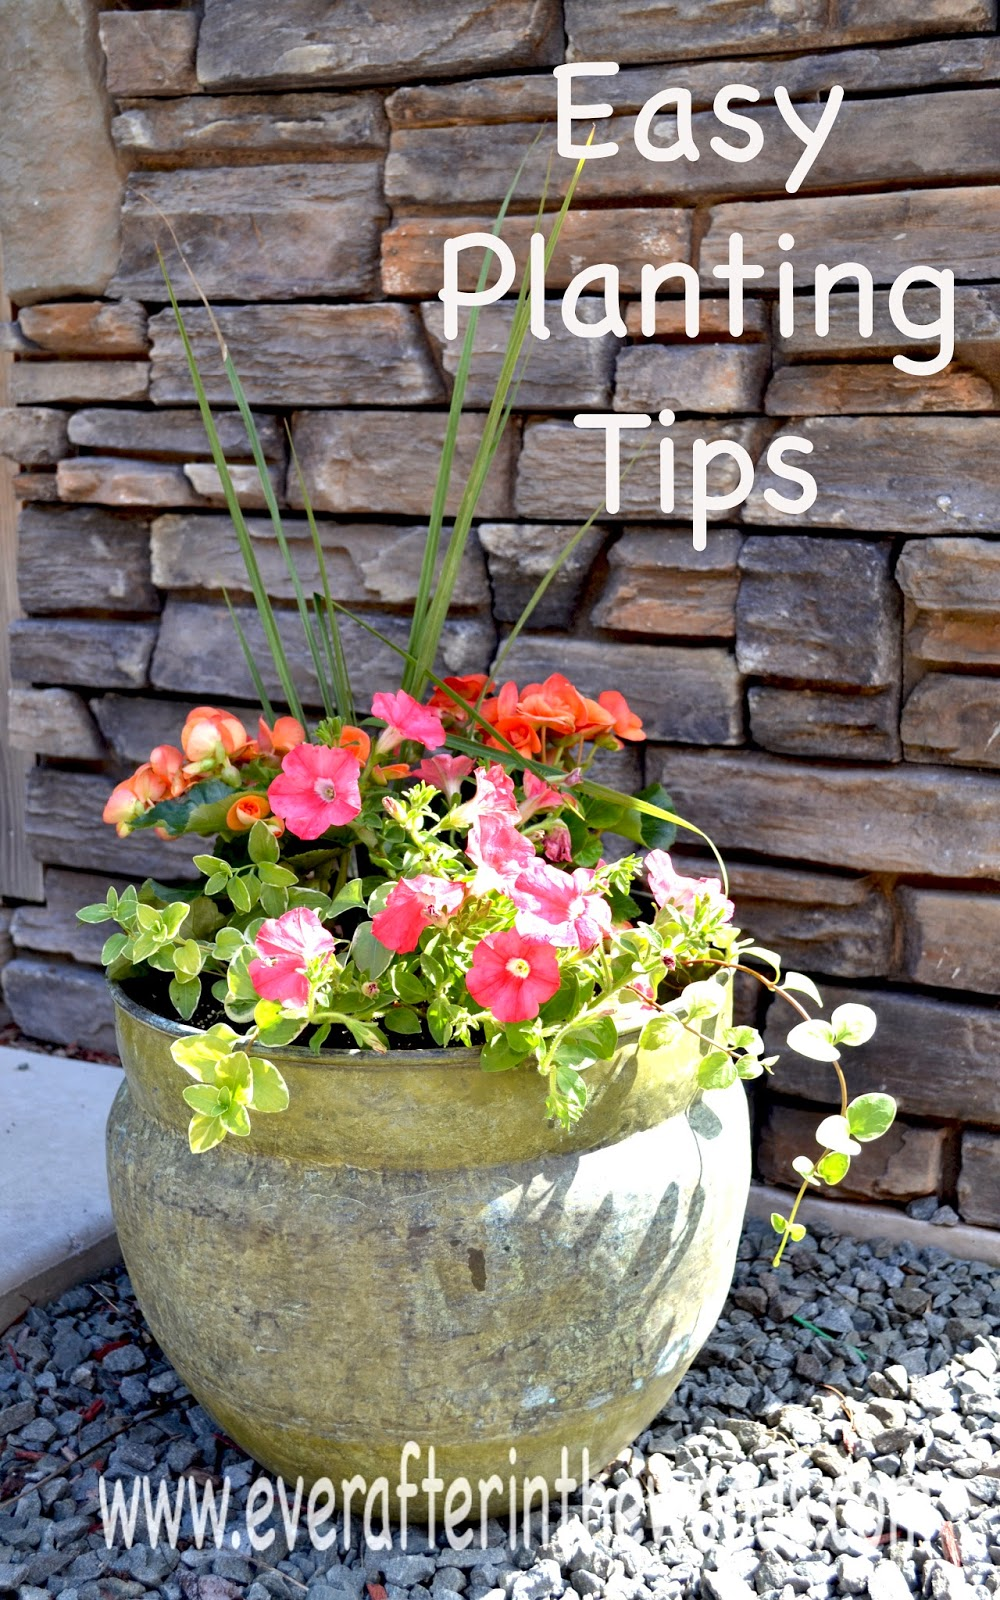 Spring ideas for gardening